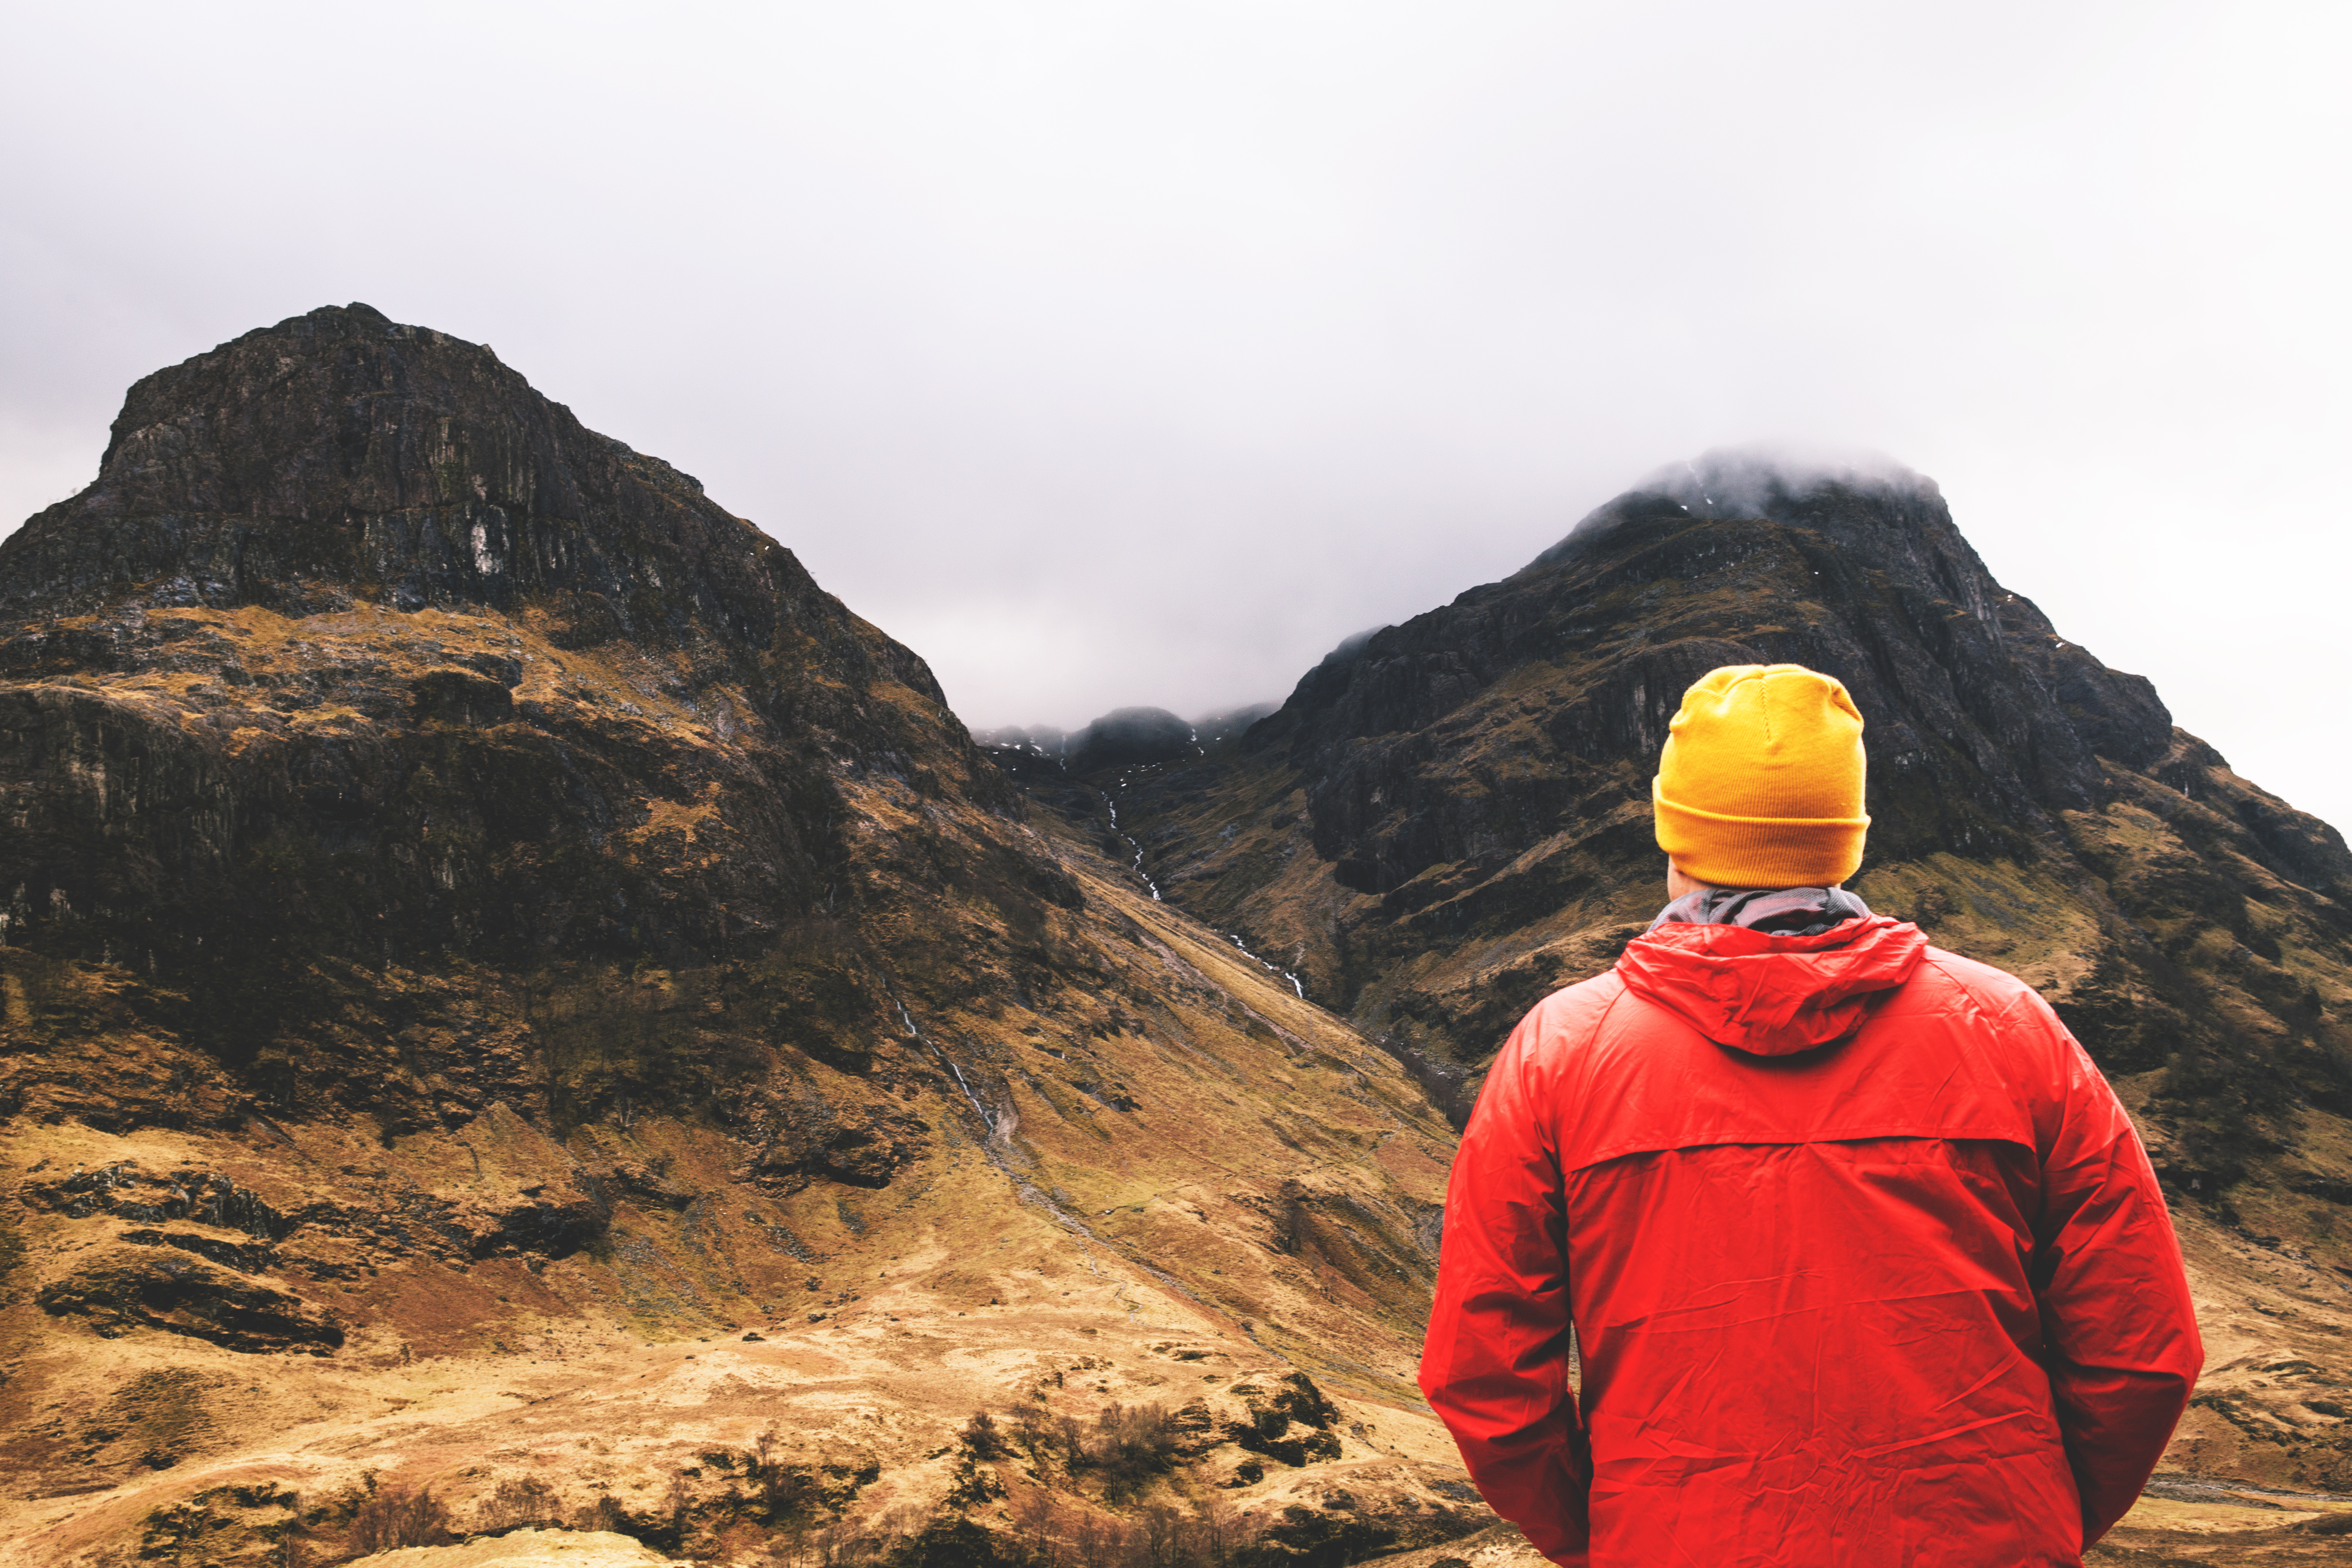 The Scottish Highlands might be a lovely starting point for your first solo tour.